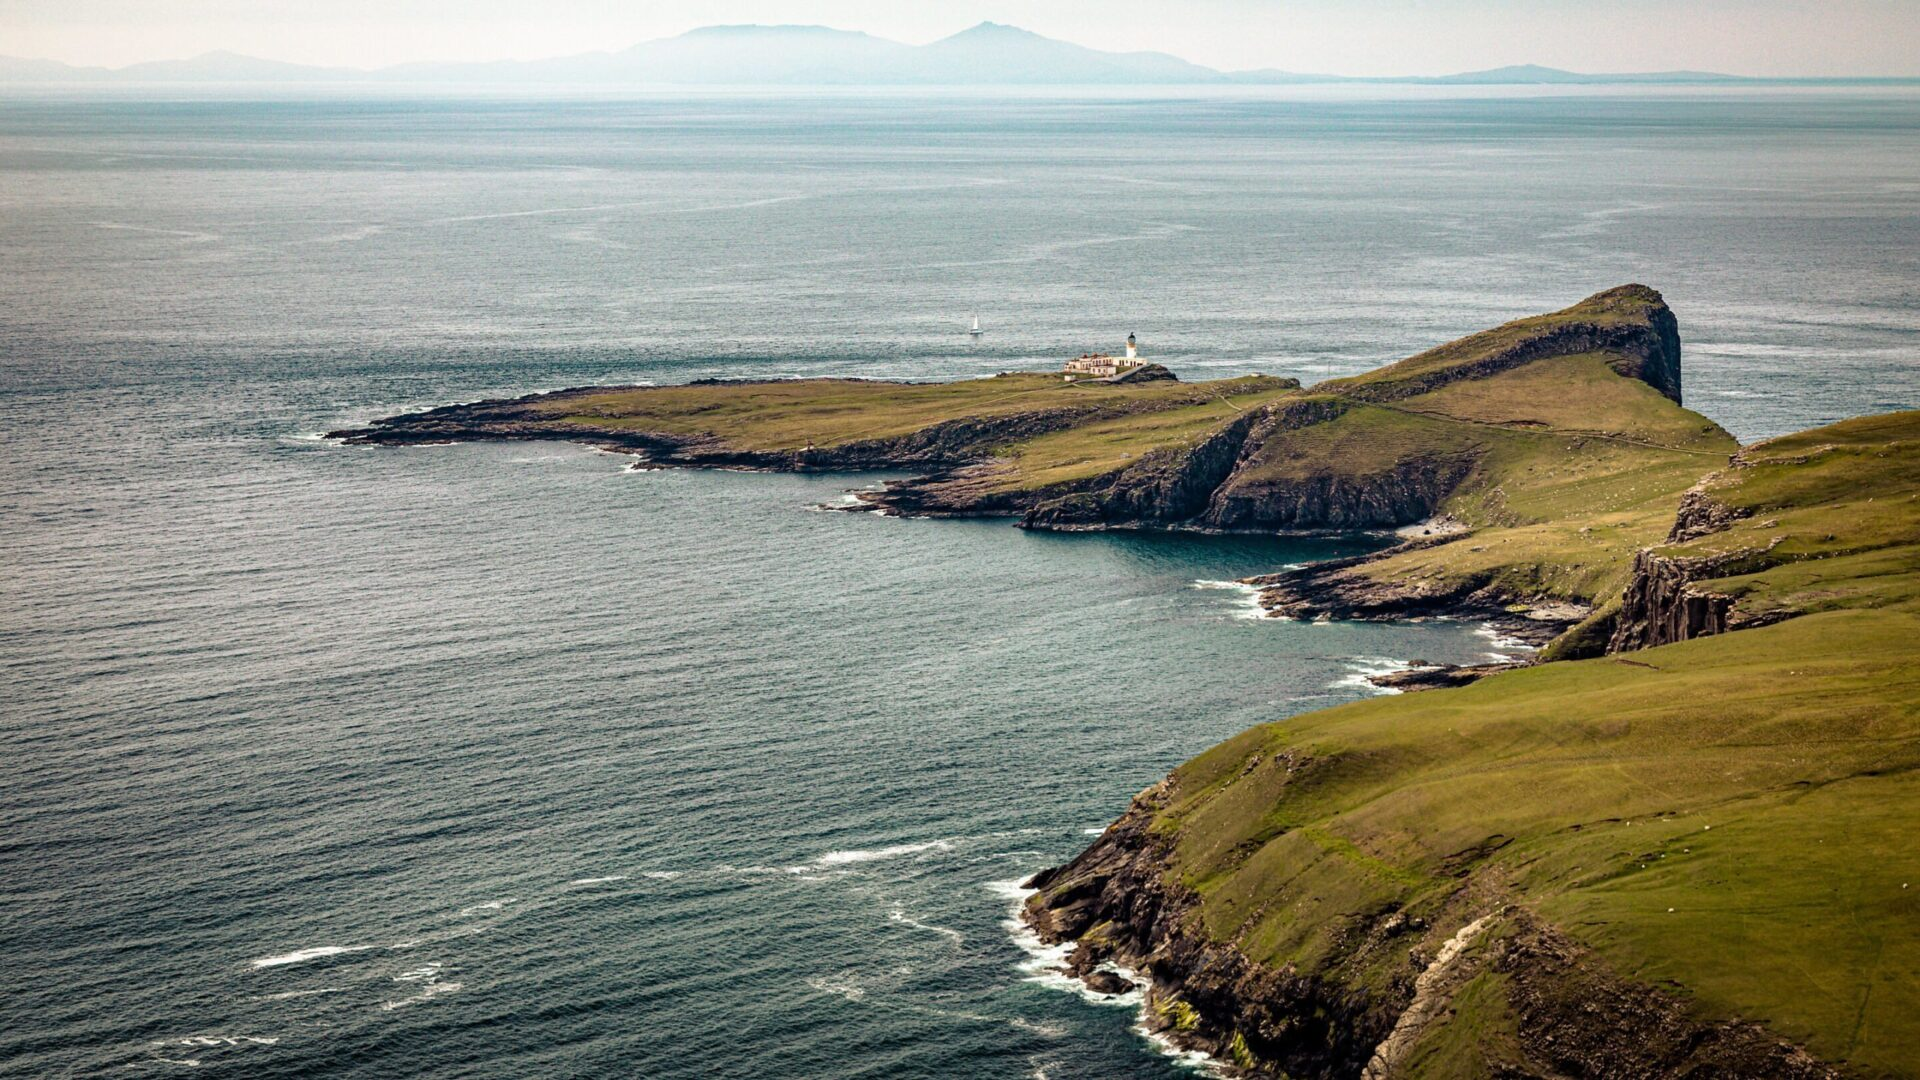 Neist Point from above